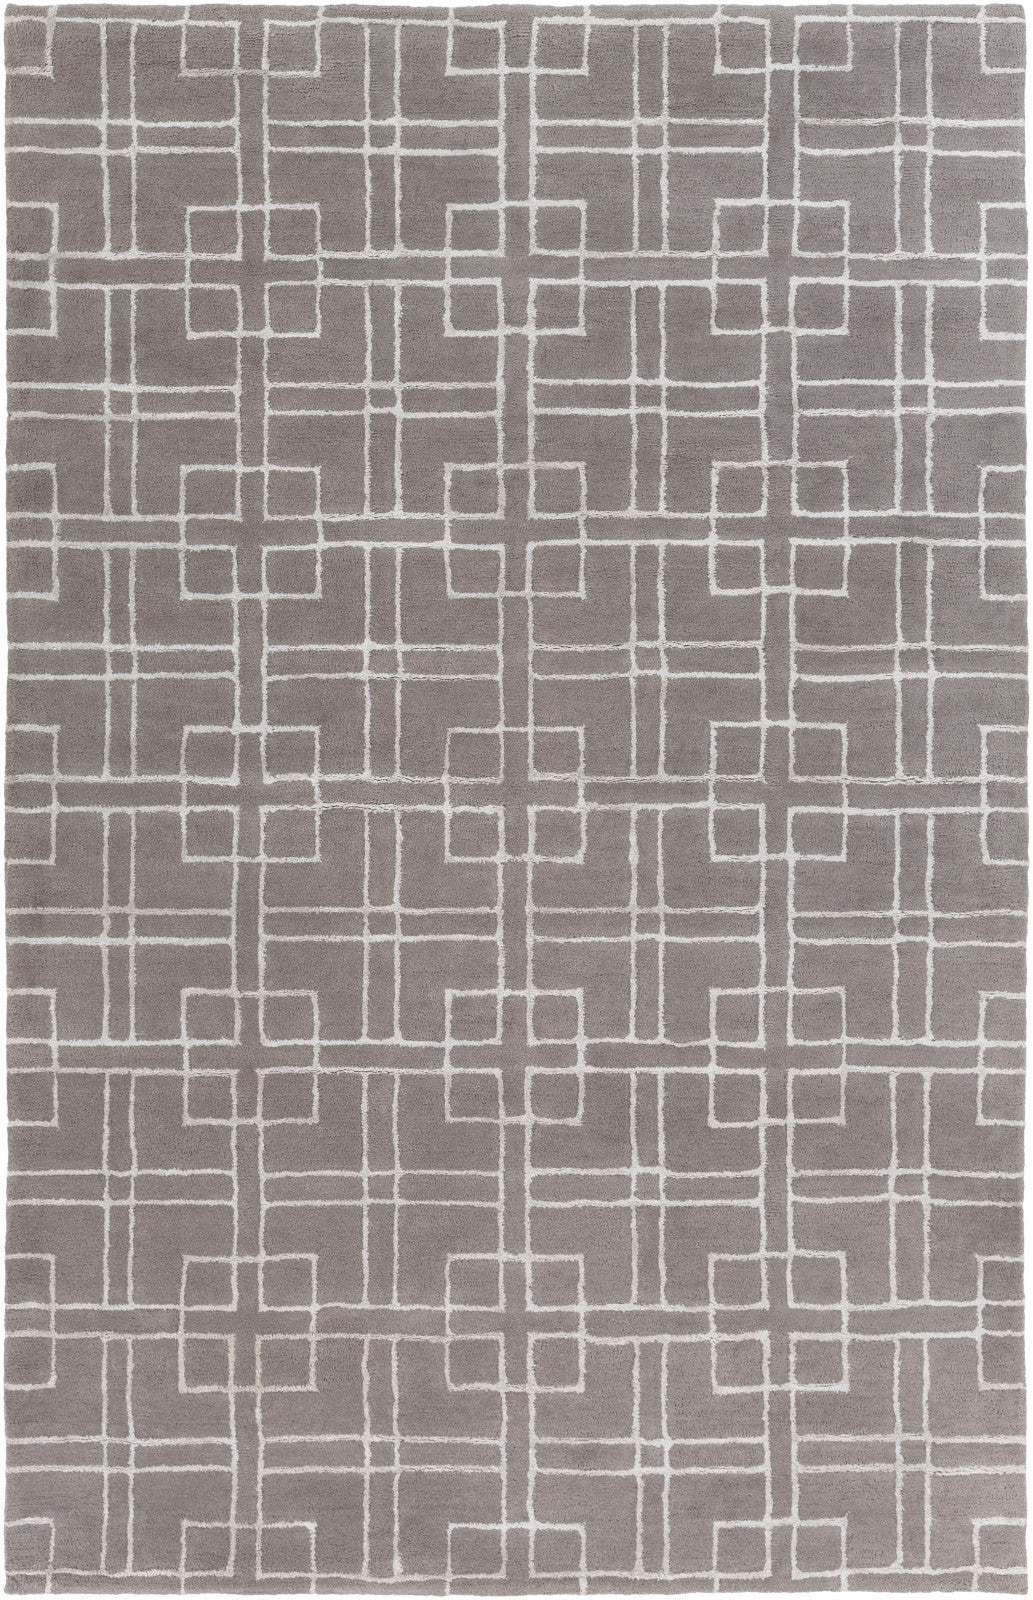 Surya Manor MNR-1012 Area Rug by GlucksteinHome